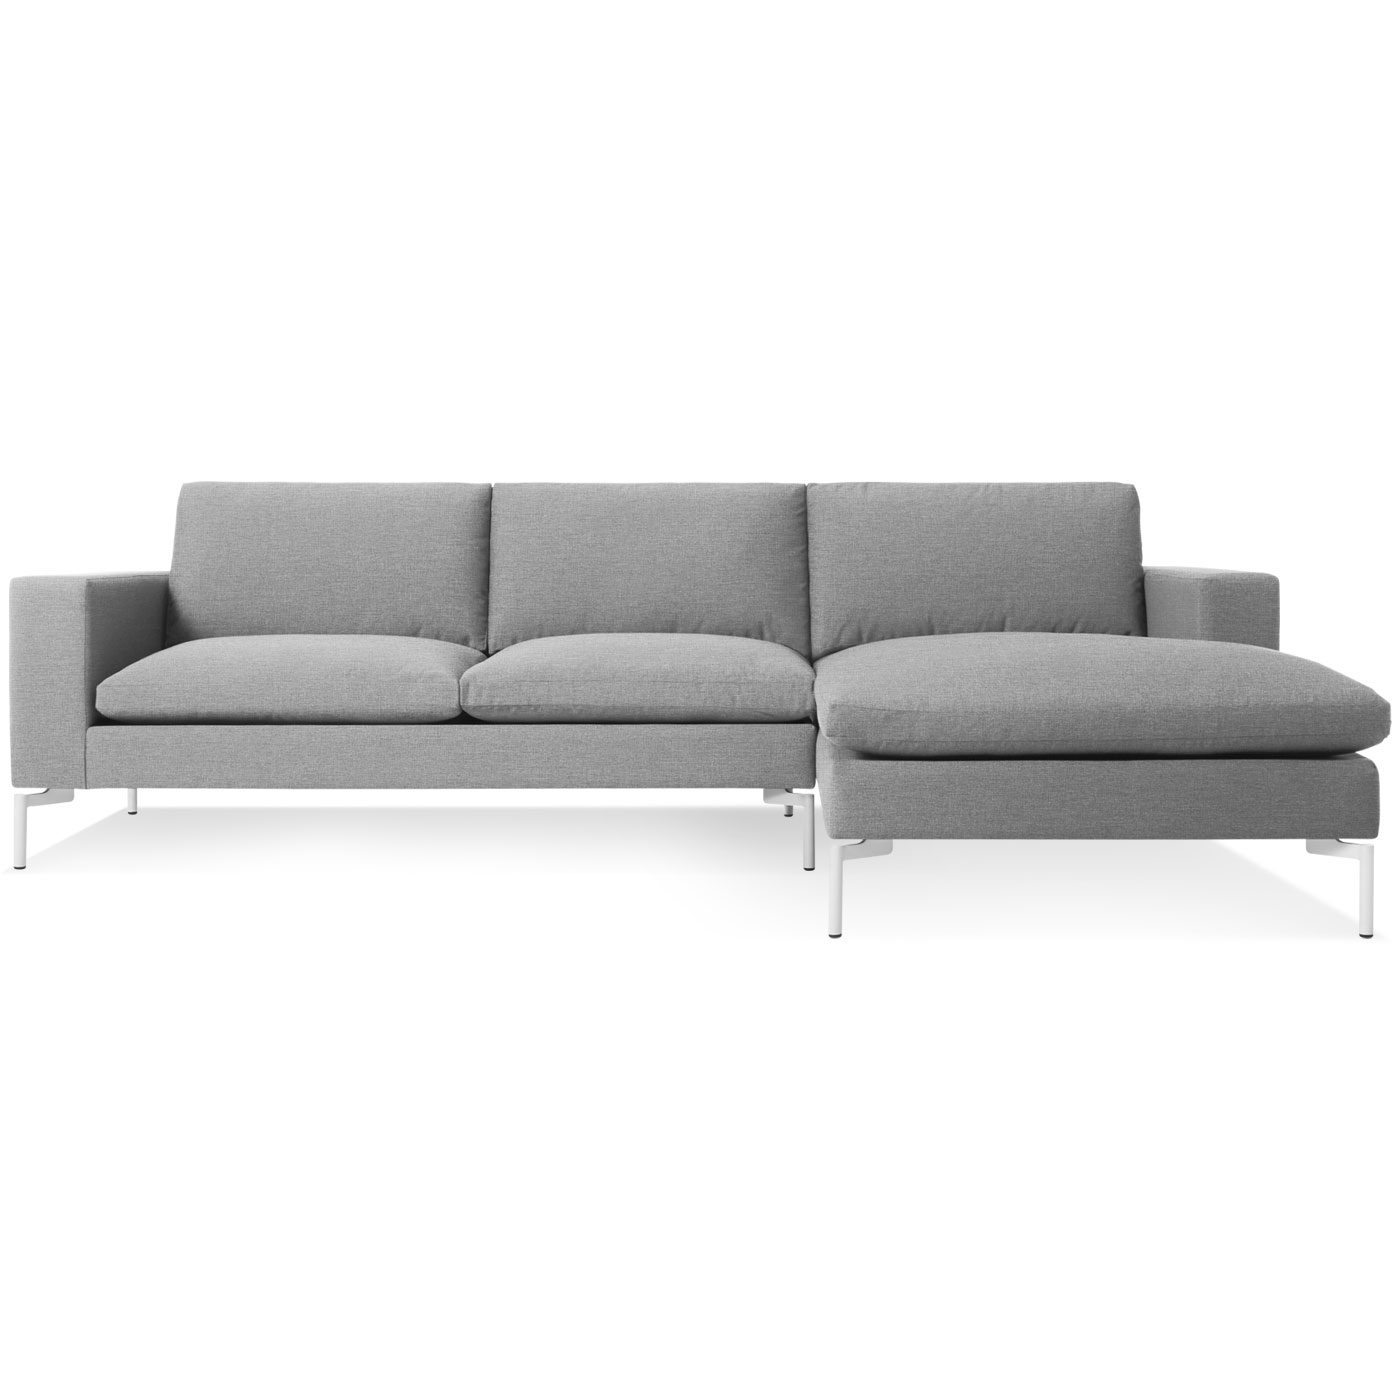 Newest Grey Chaise Sofas With Regard To New Standard Modern Chaise Sofa – Left Chaise (View 3 of 15)